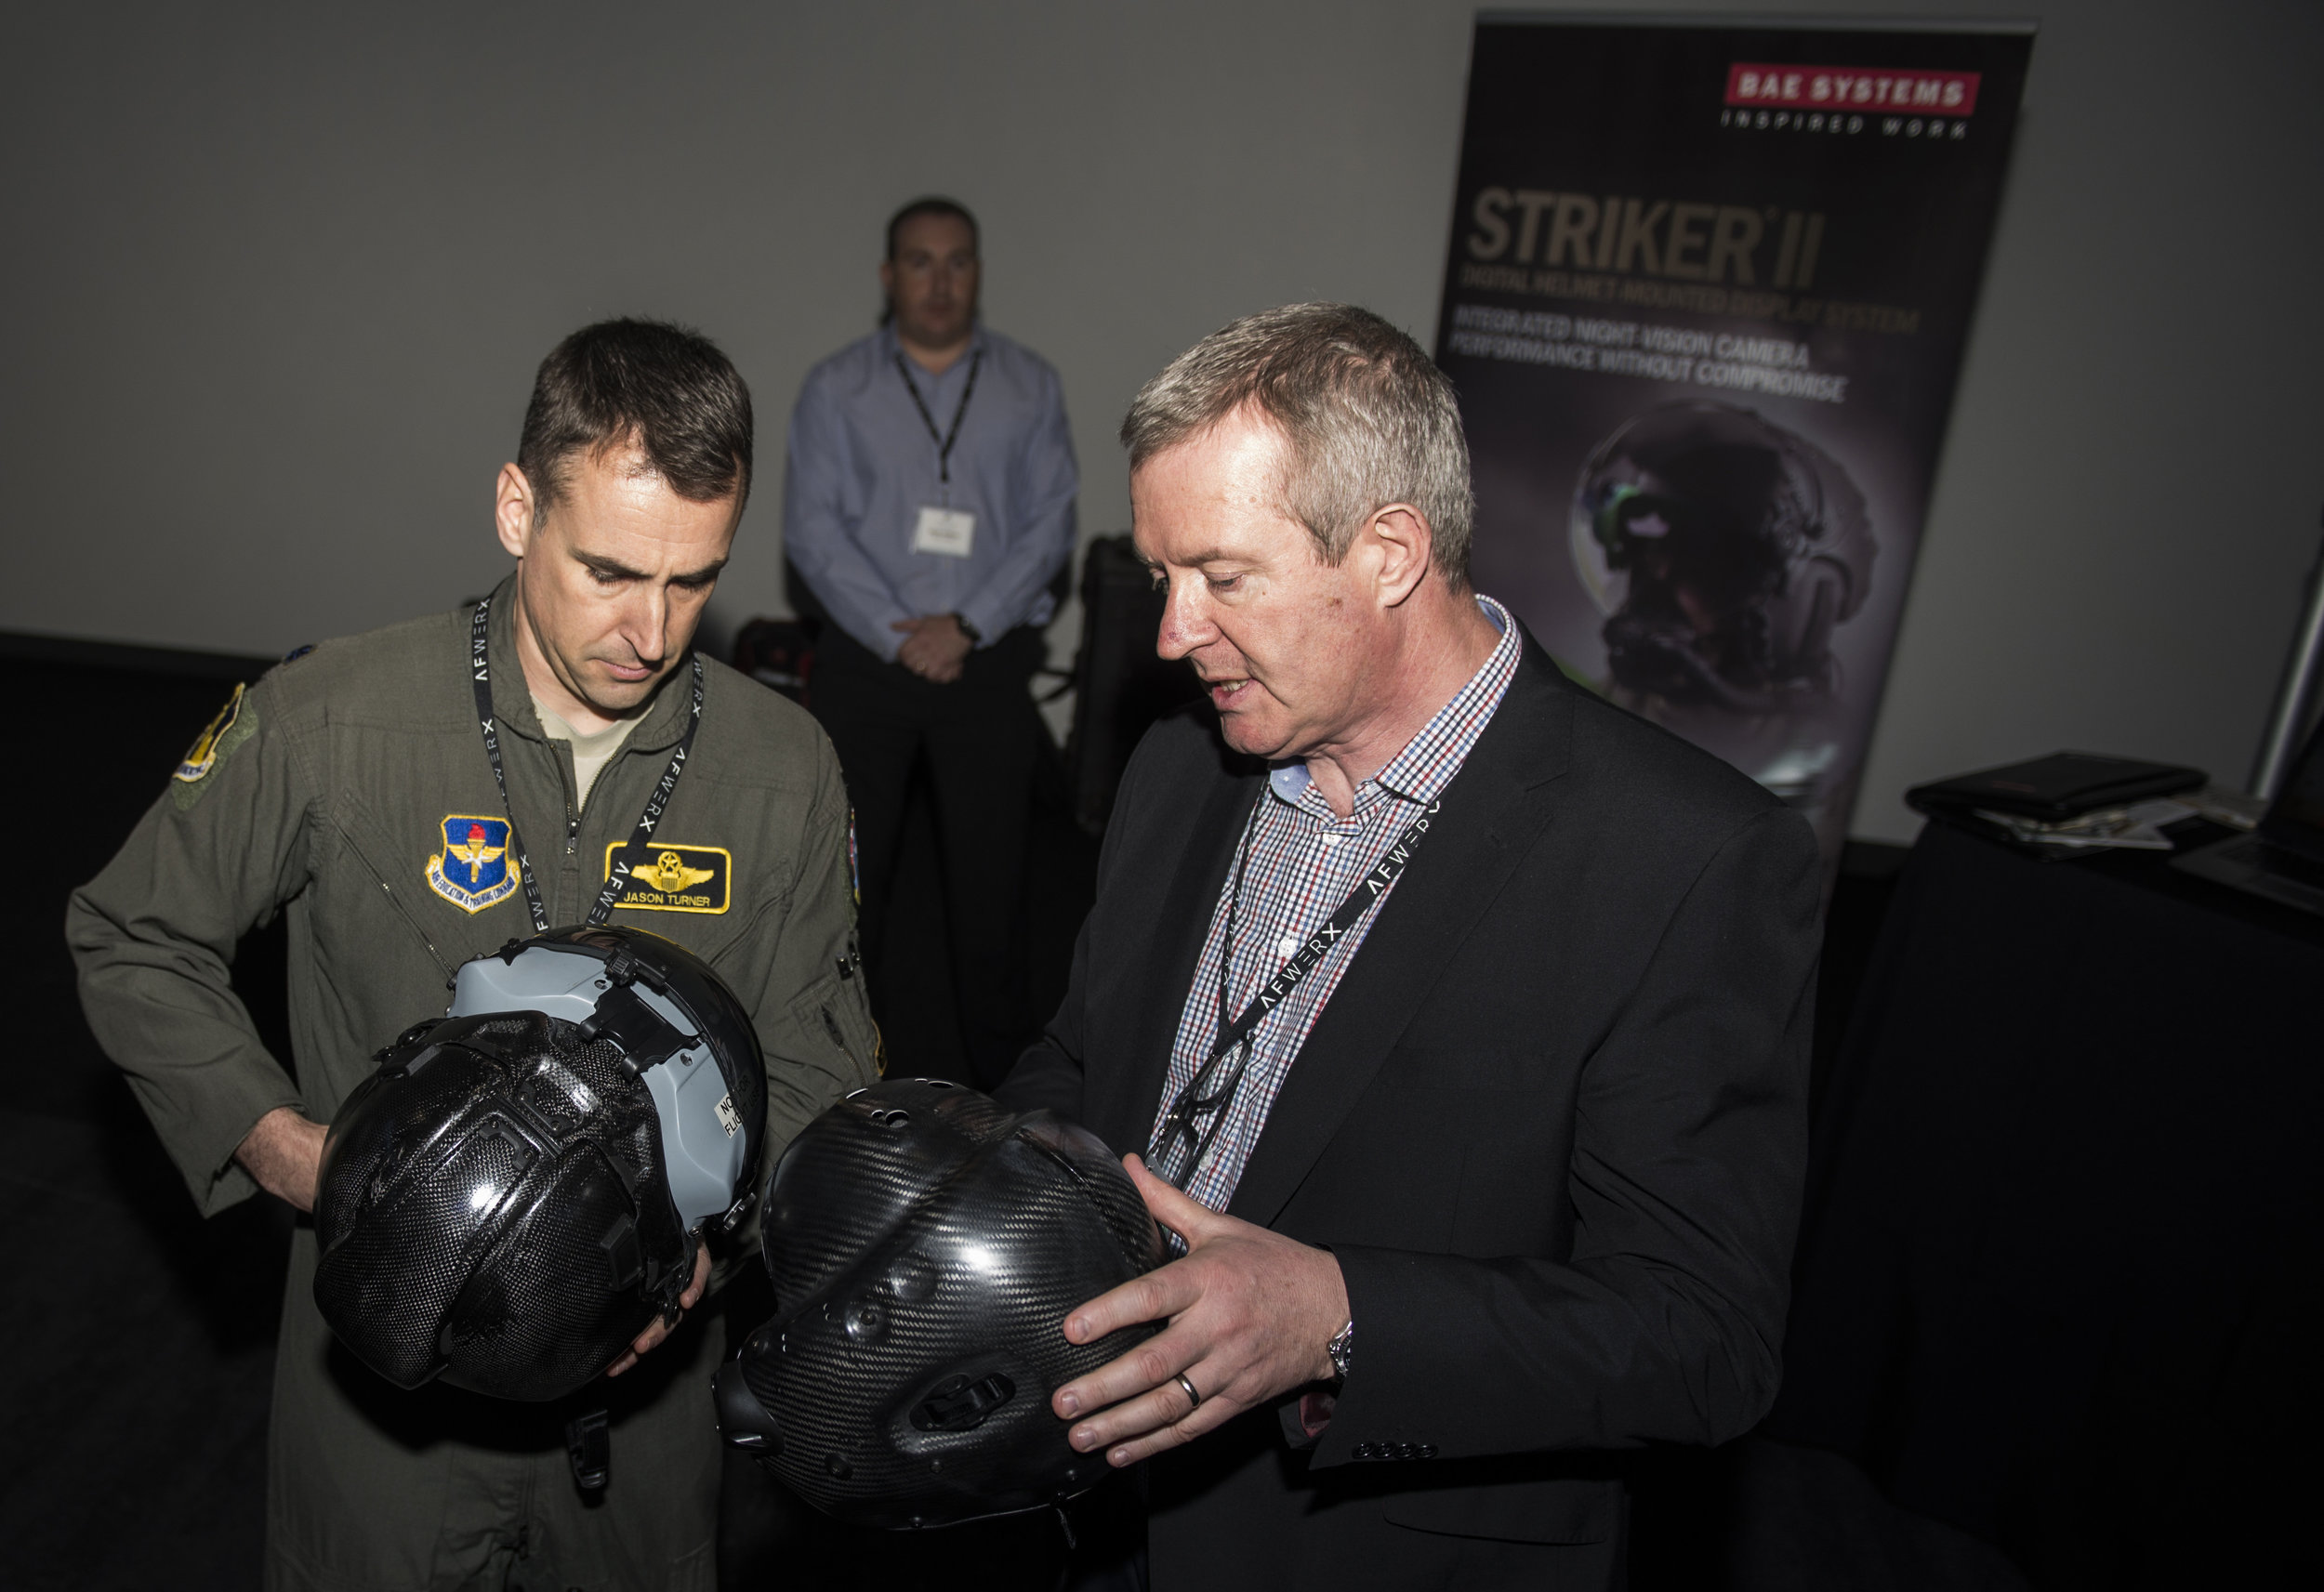 After approximately two months of problem-definition workshops with stakeholders and experts, as well as an on-line design challenge soliciting ideas from the public, the AFWERX Vegas Innovation Hub hosted 35 non-traditional potential vendors of components and full-helmet solutions in a November 2018 showcase. From these, a total of 10 vendors were configured into three teams. Each was tasked to develop prototypes. PHOTO: U.S. Air Force Airman 1st Class Bryan T. Guthrie